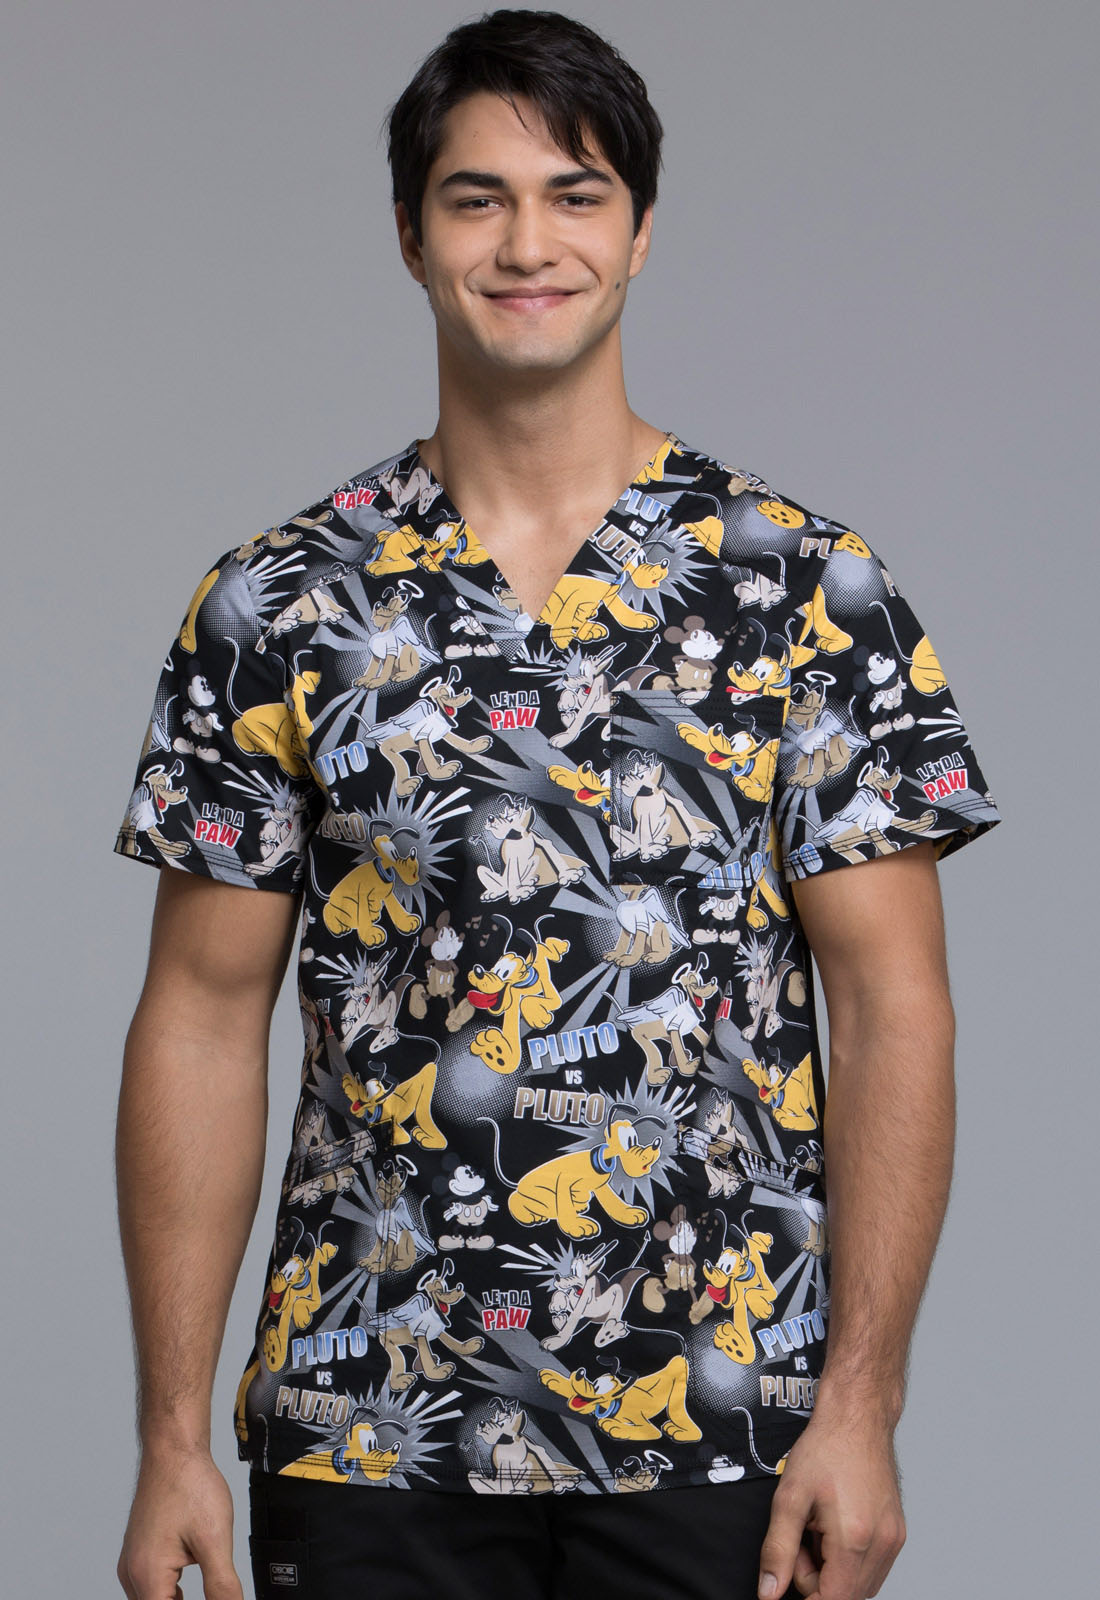 4739ef96cec Licensed Prints Men's V-Neck Top in Pluto vs. Pluto TF675-MKND from ...